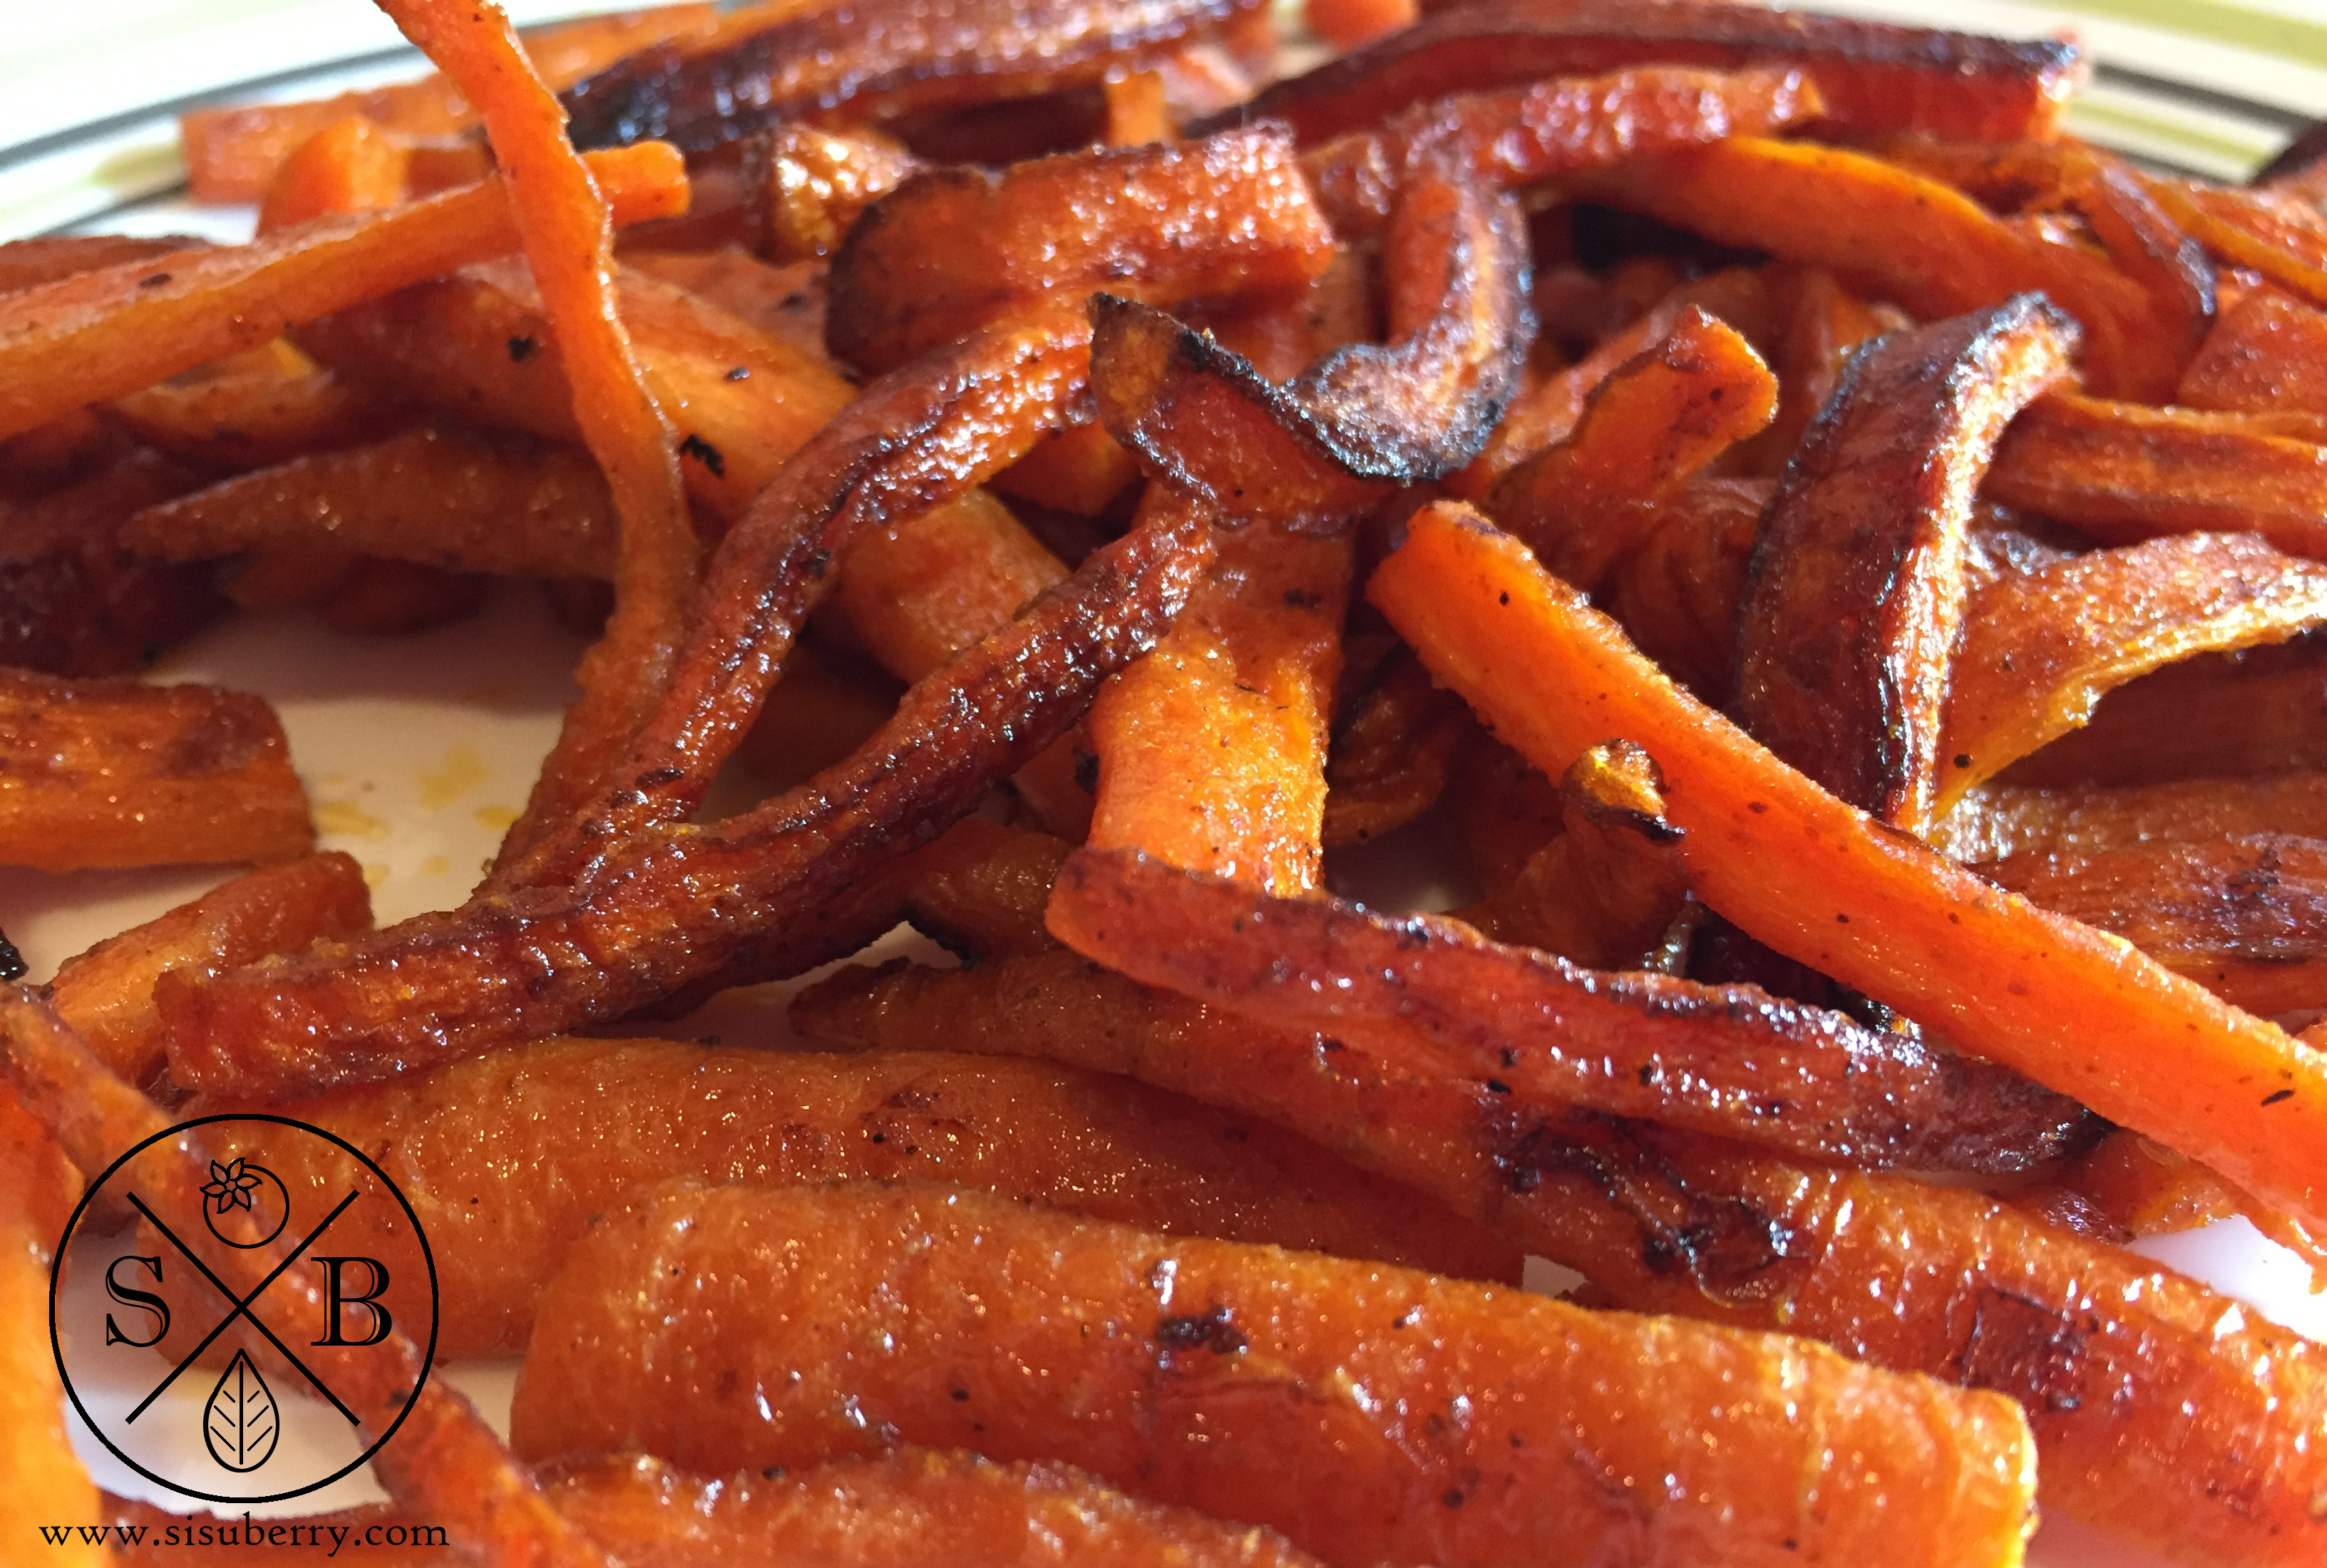 Baked Carrot French Fries | Sisuberry.com